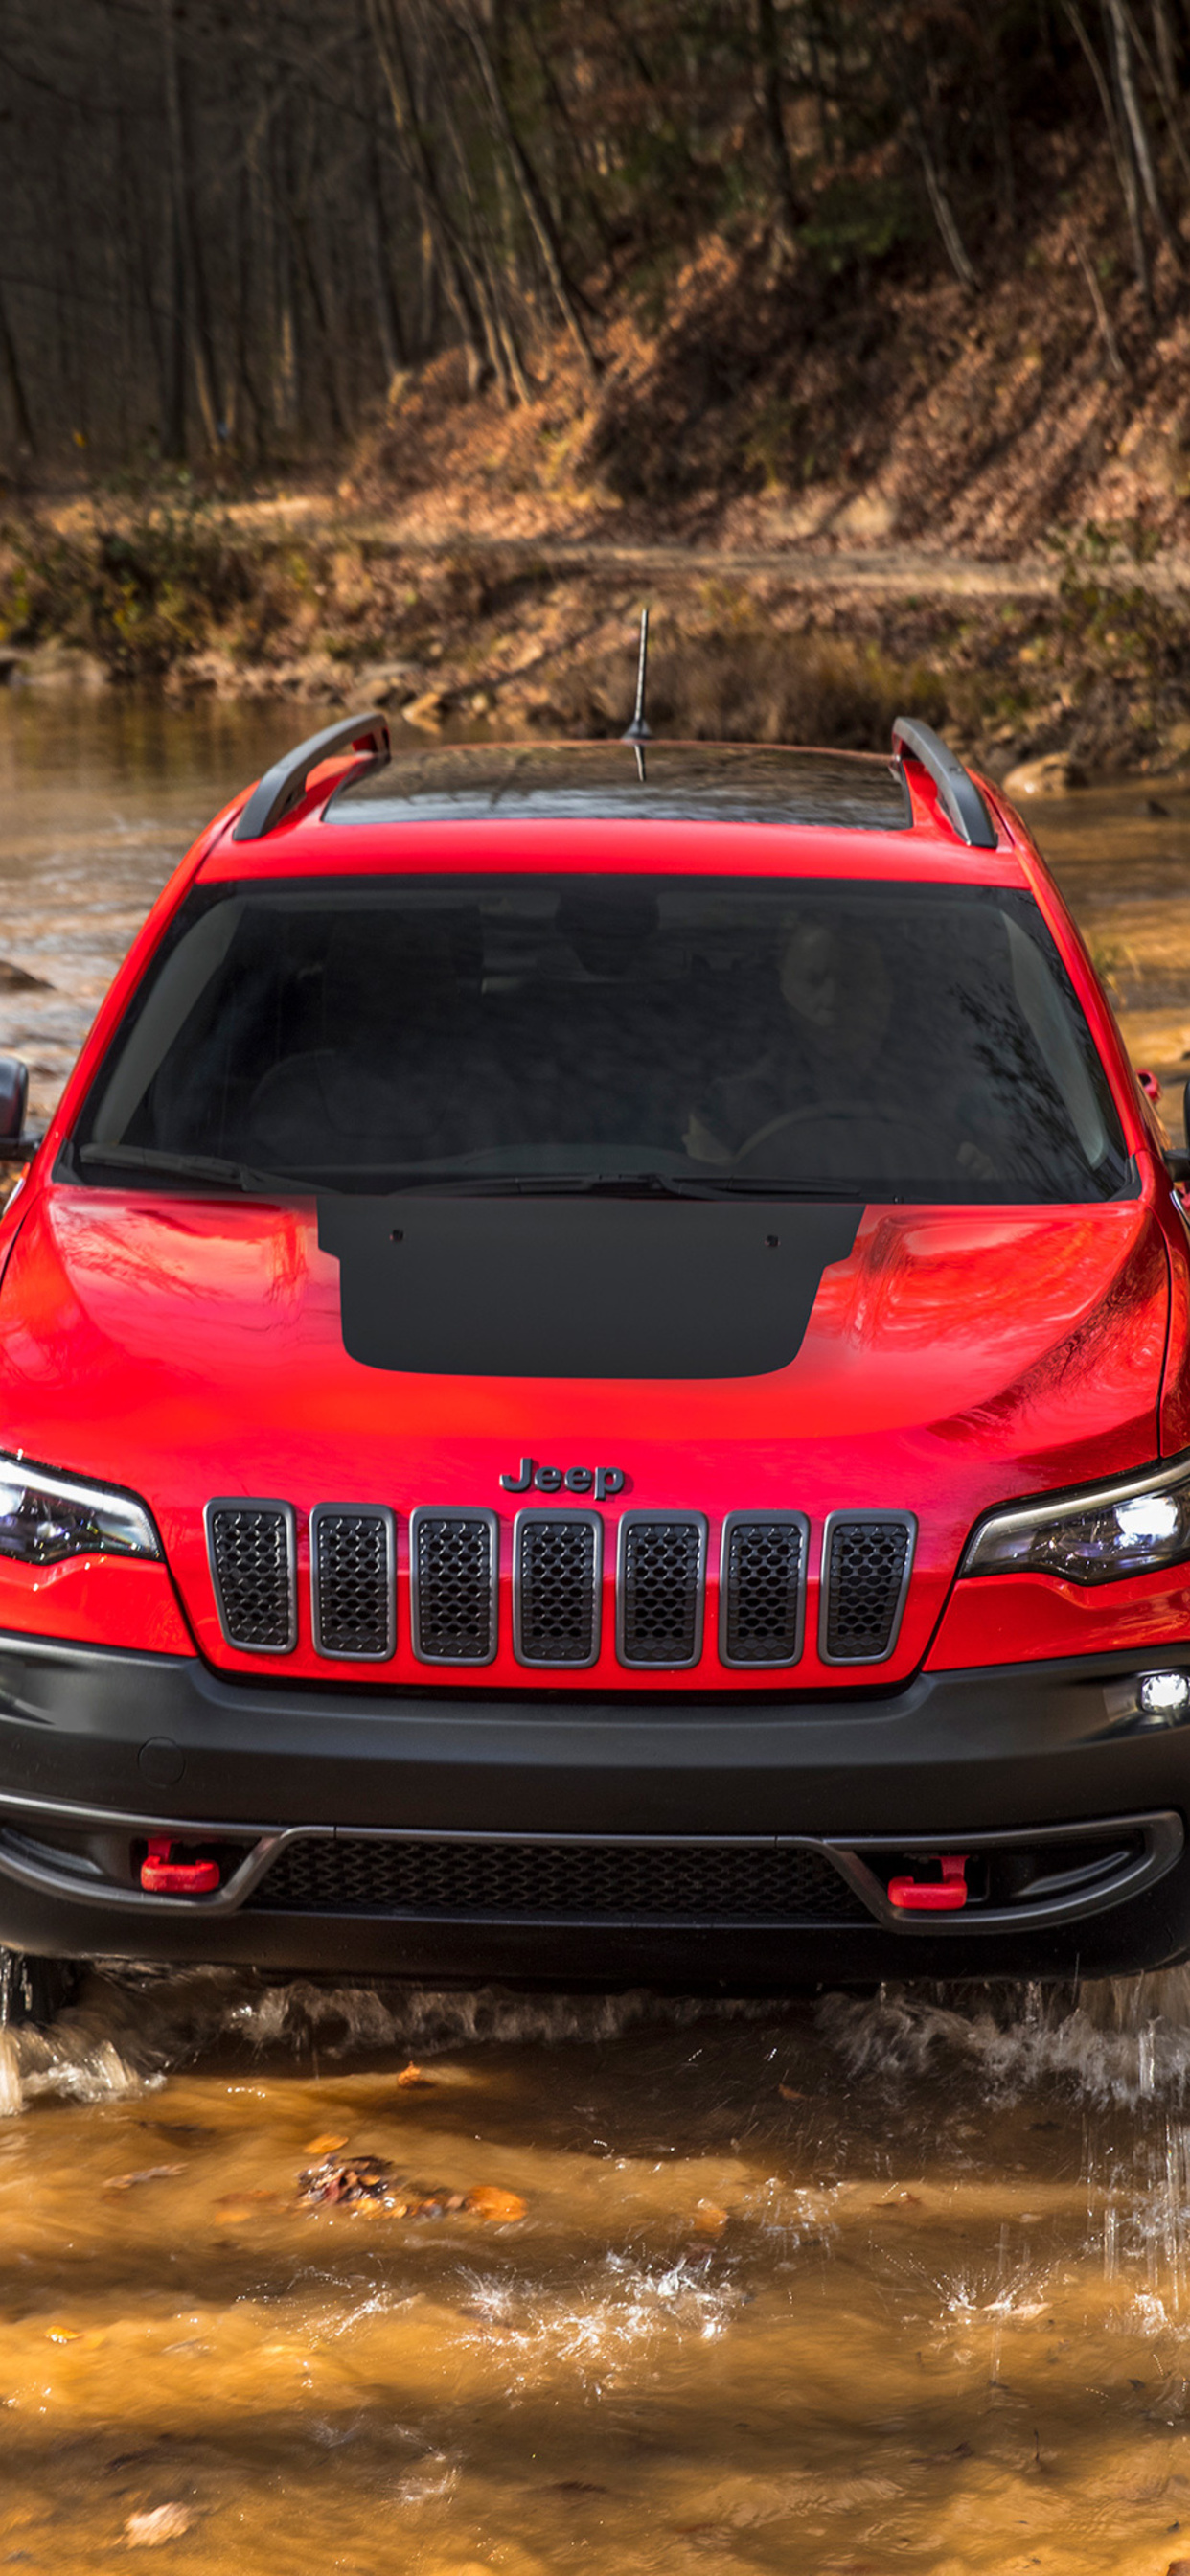 1242x2688 Jeep Cherokee Trailhawk Iphone Xs Max Hd 4k